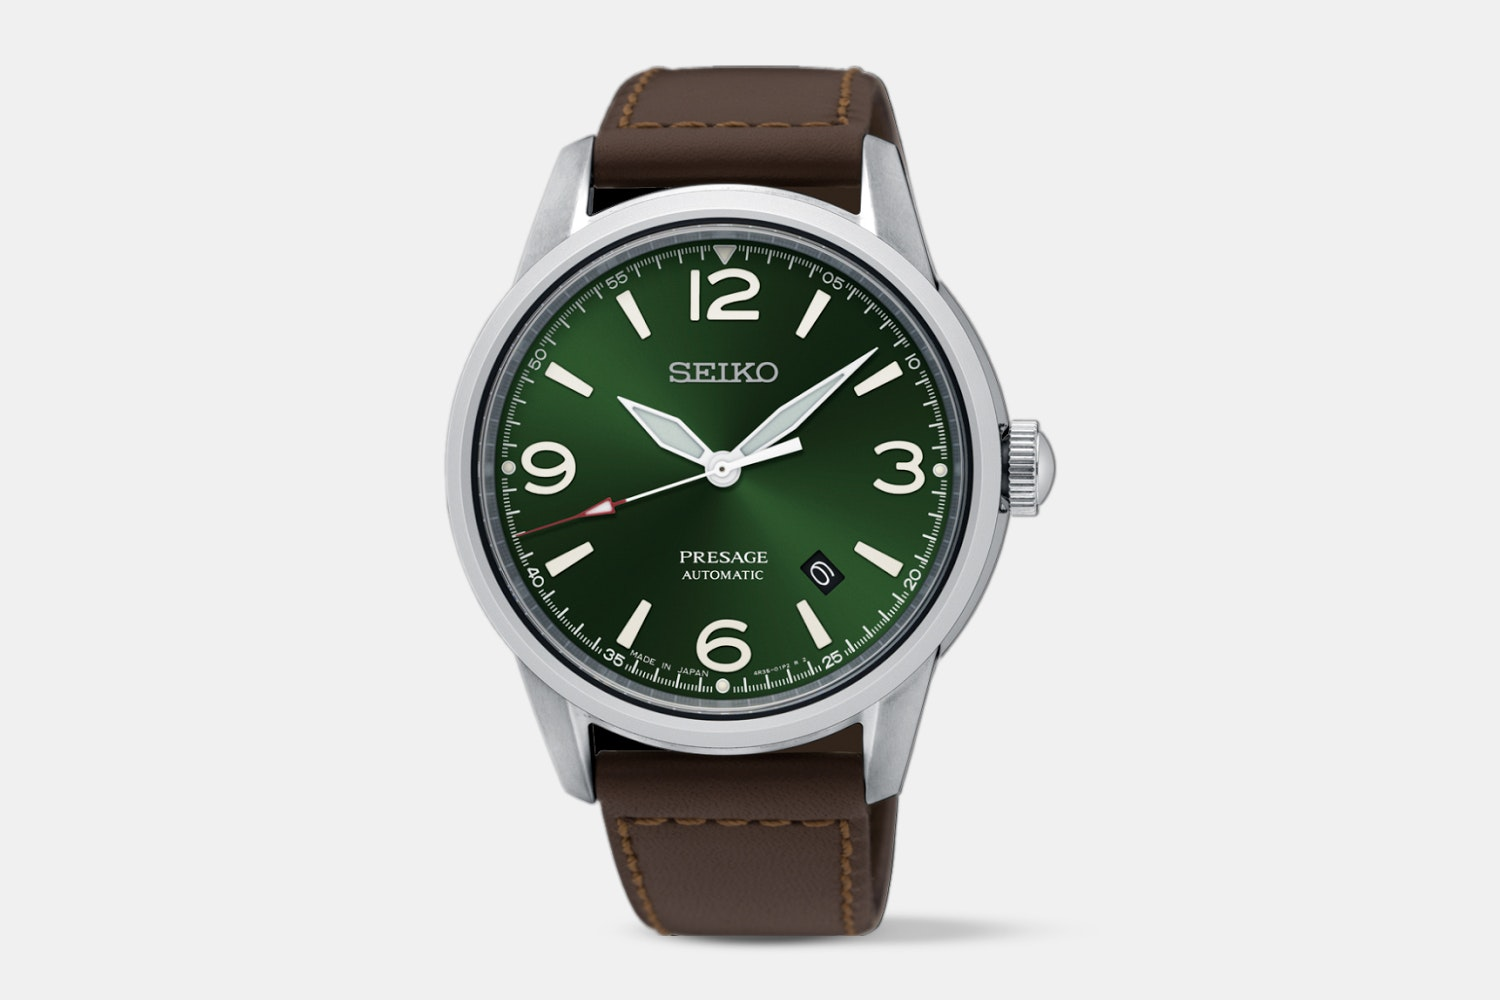 SRPB65J1 (green dial, brown leather strap)